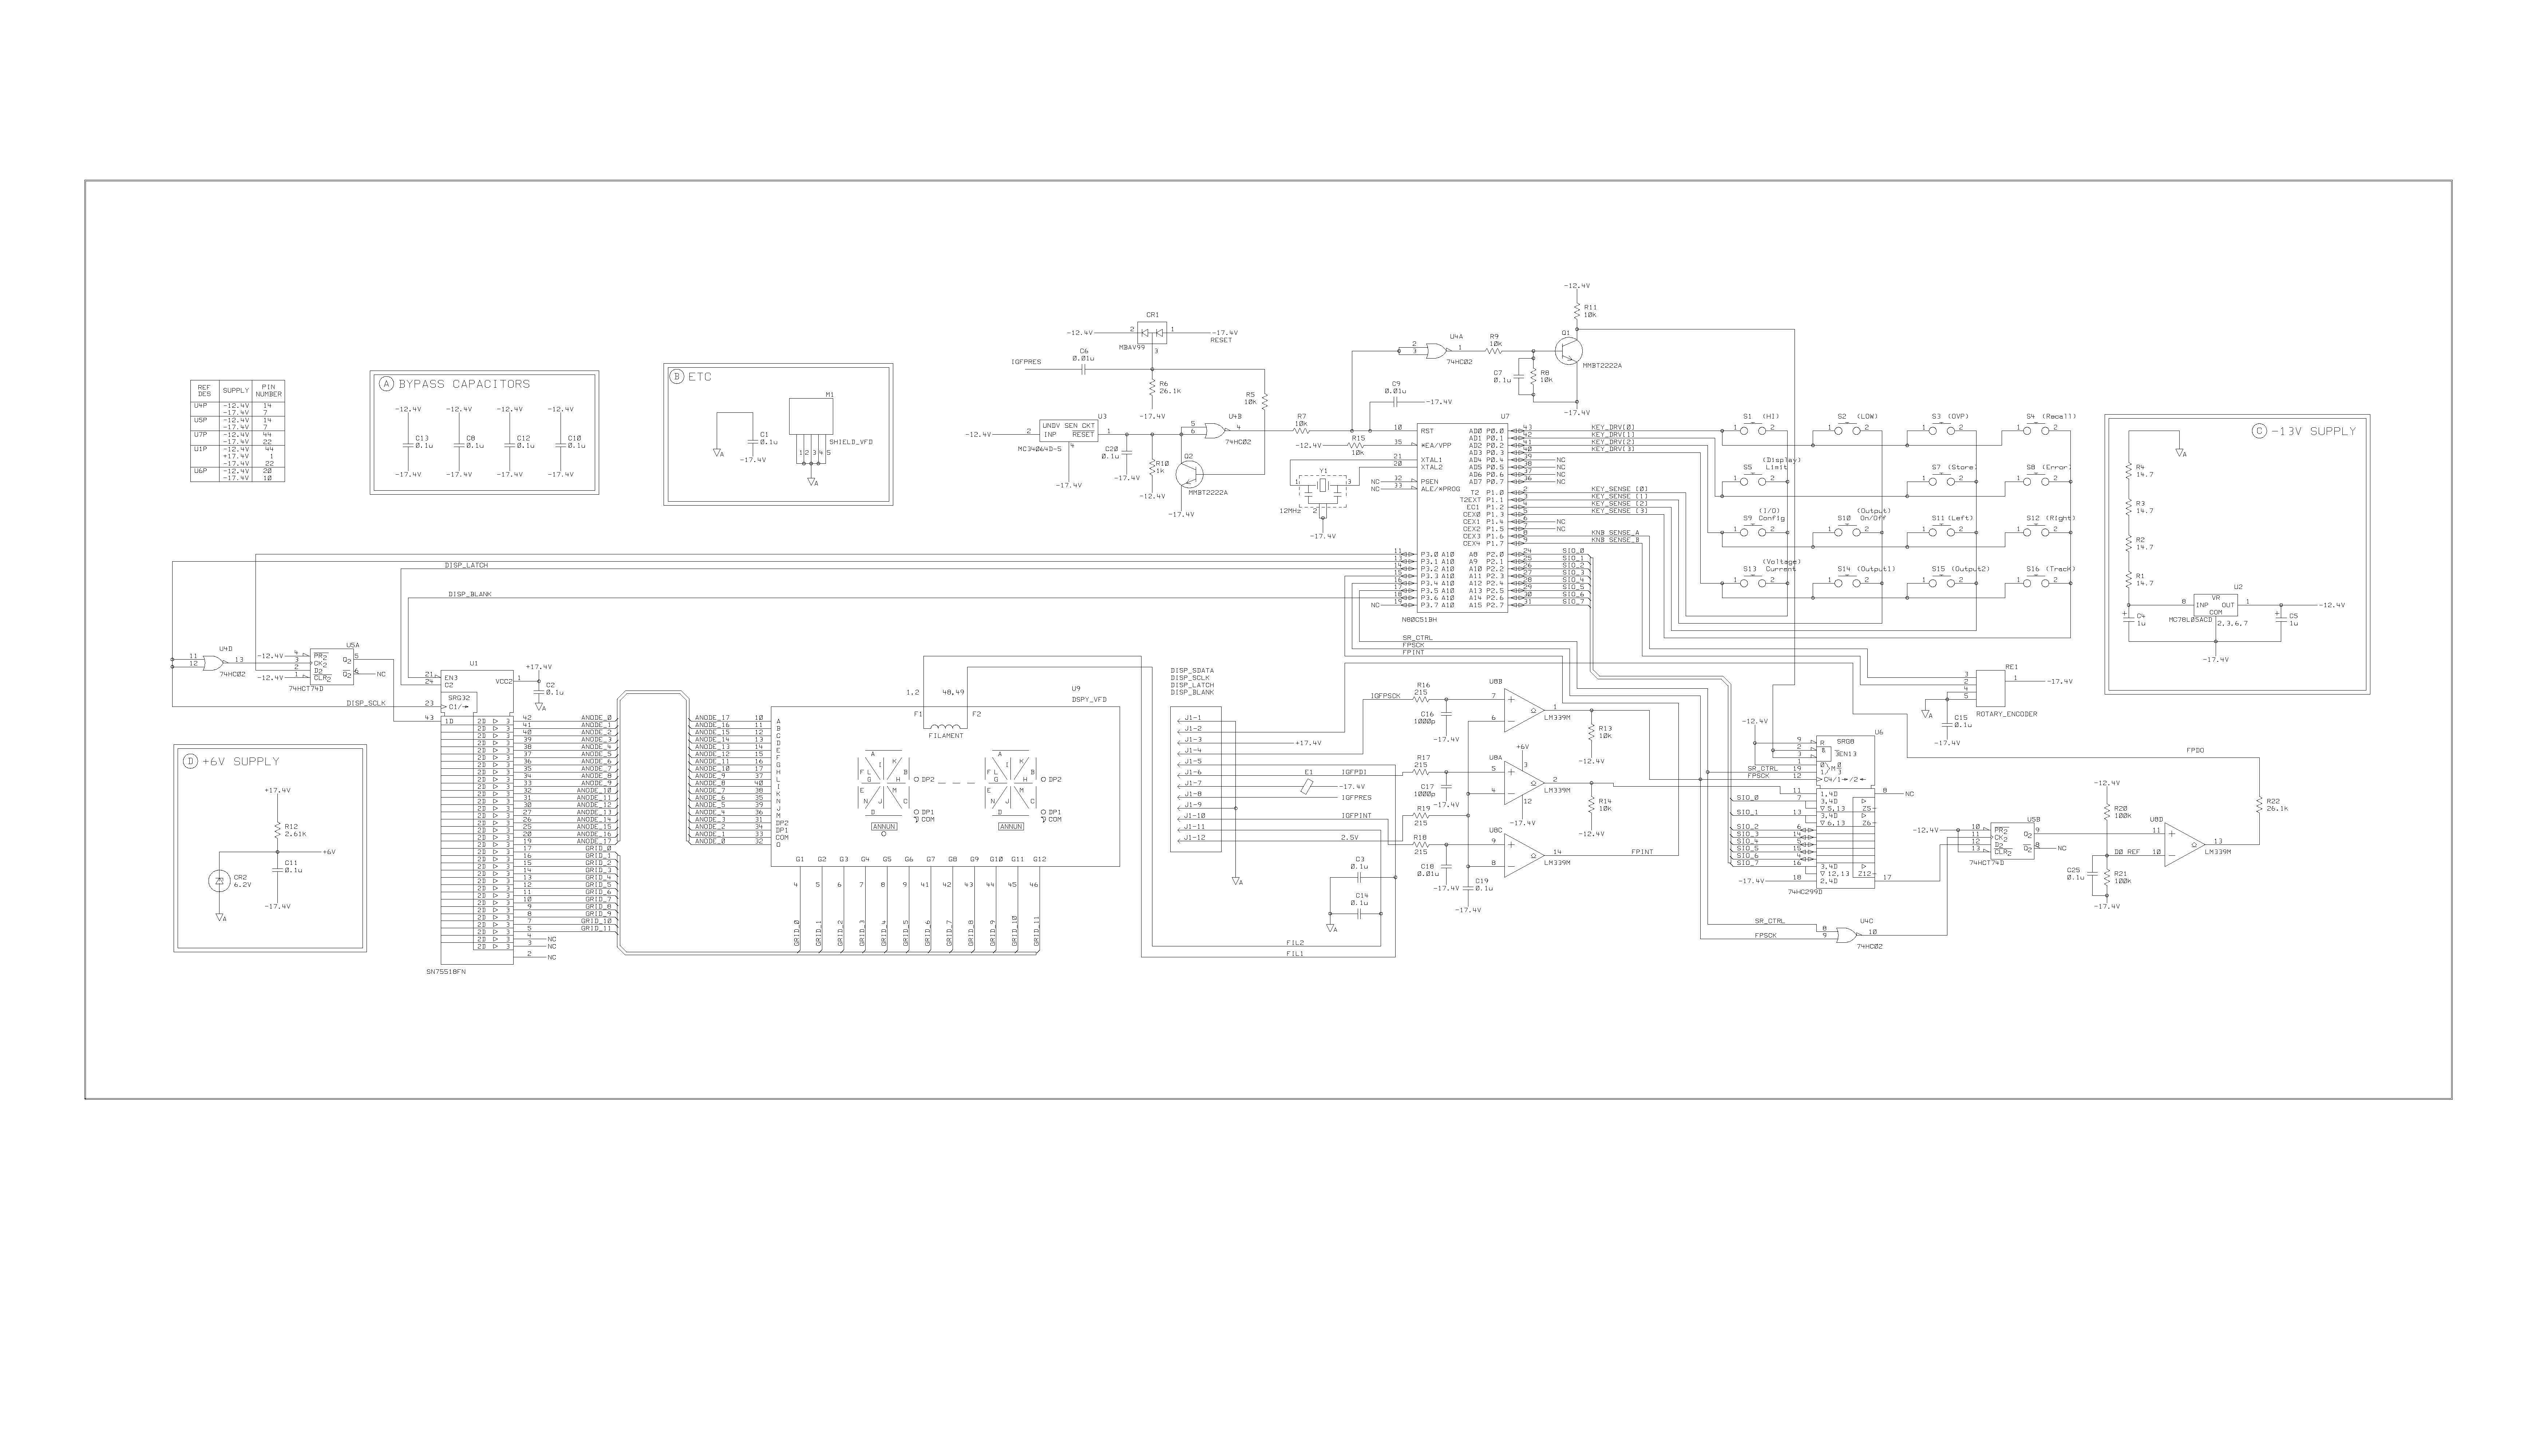 Agilent E3646a Power Supply Repair 5v Regulated With Overvoltage Protection Schematic Display Board Schematics Extracted From Service Manual Pg